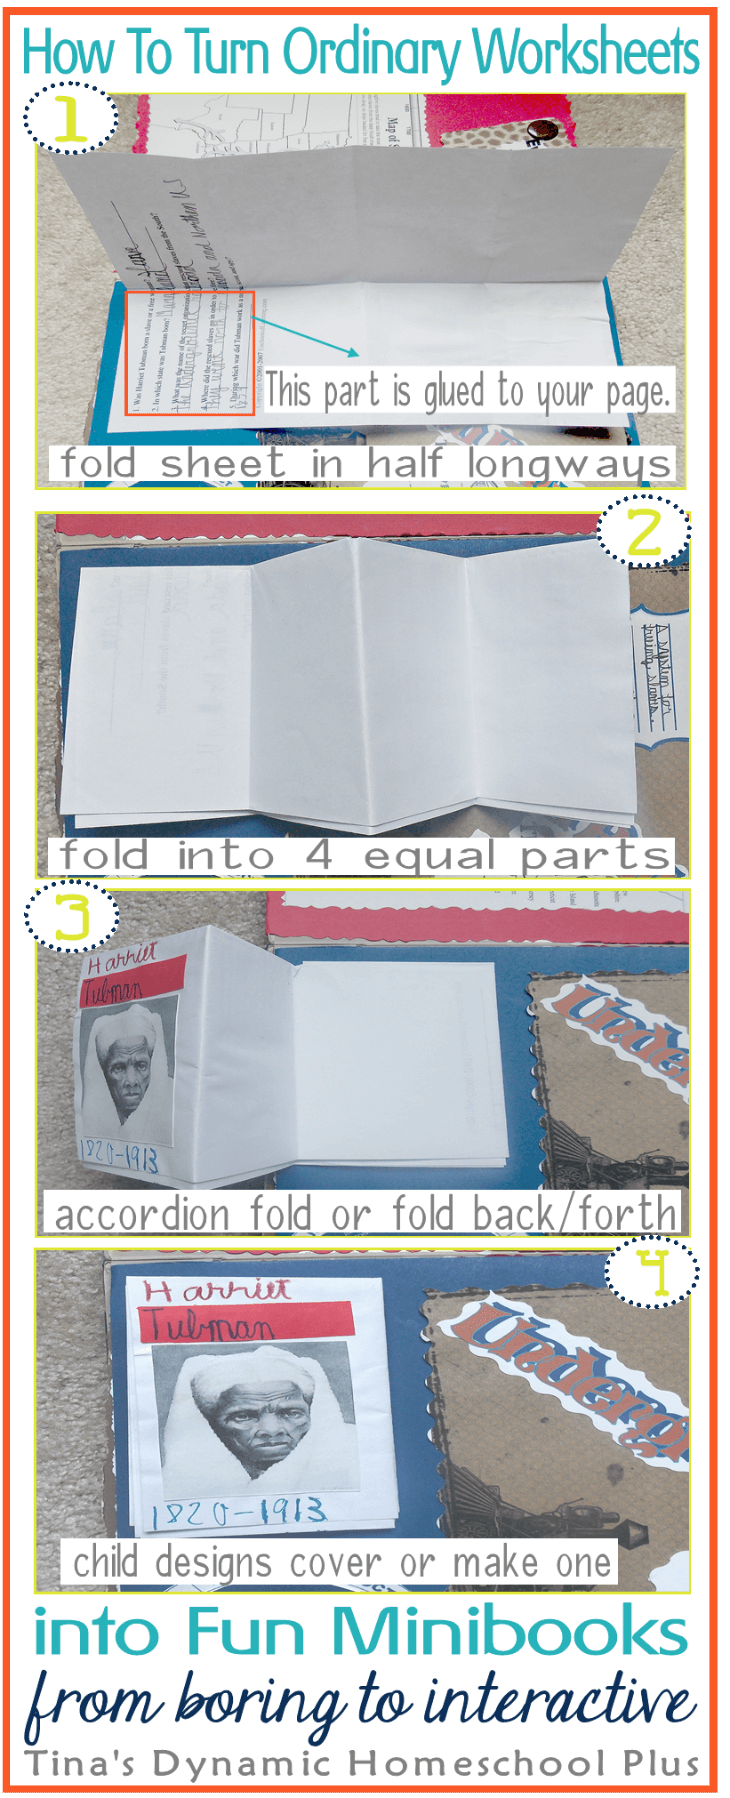 How To Turn Ordinary Worksheets into Fun Minibooks. A great way to include your middle and high school students in lapbooking @ Tinas Dynamic Homeschool Plus